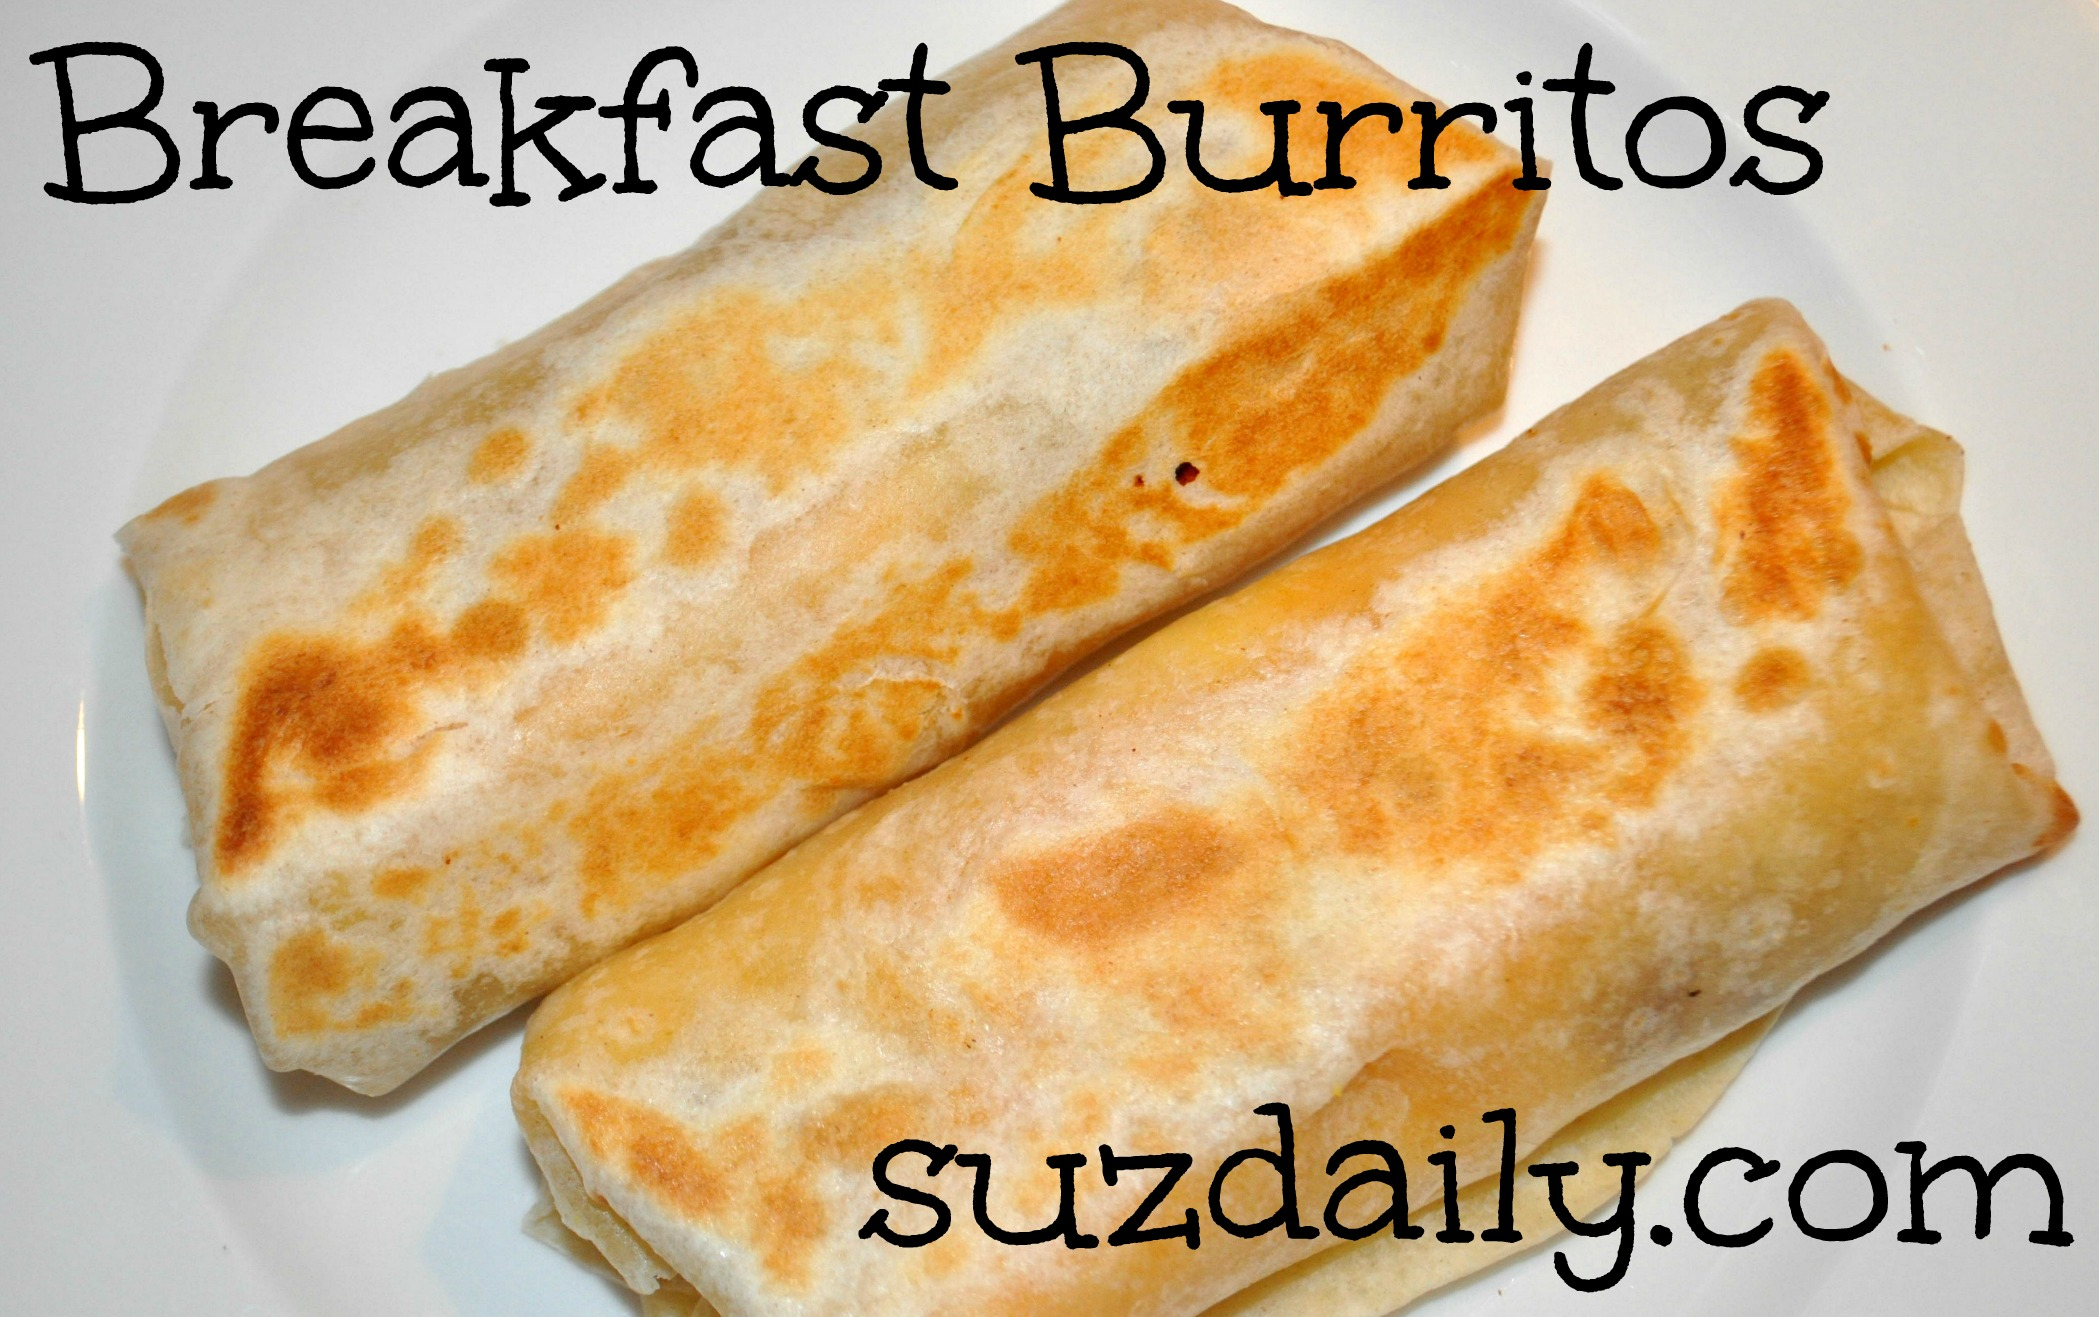 Breakfast Burritos